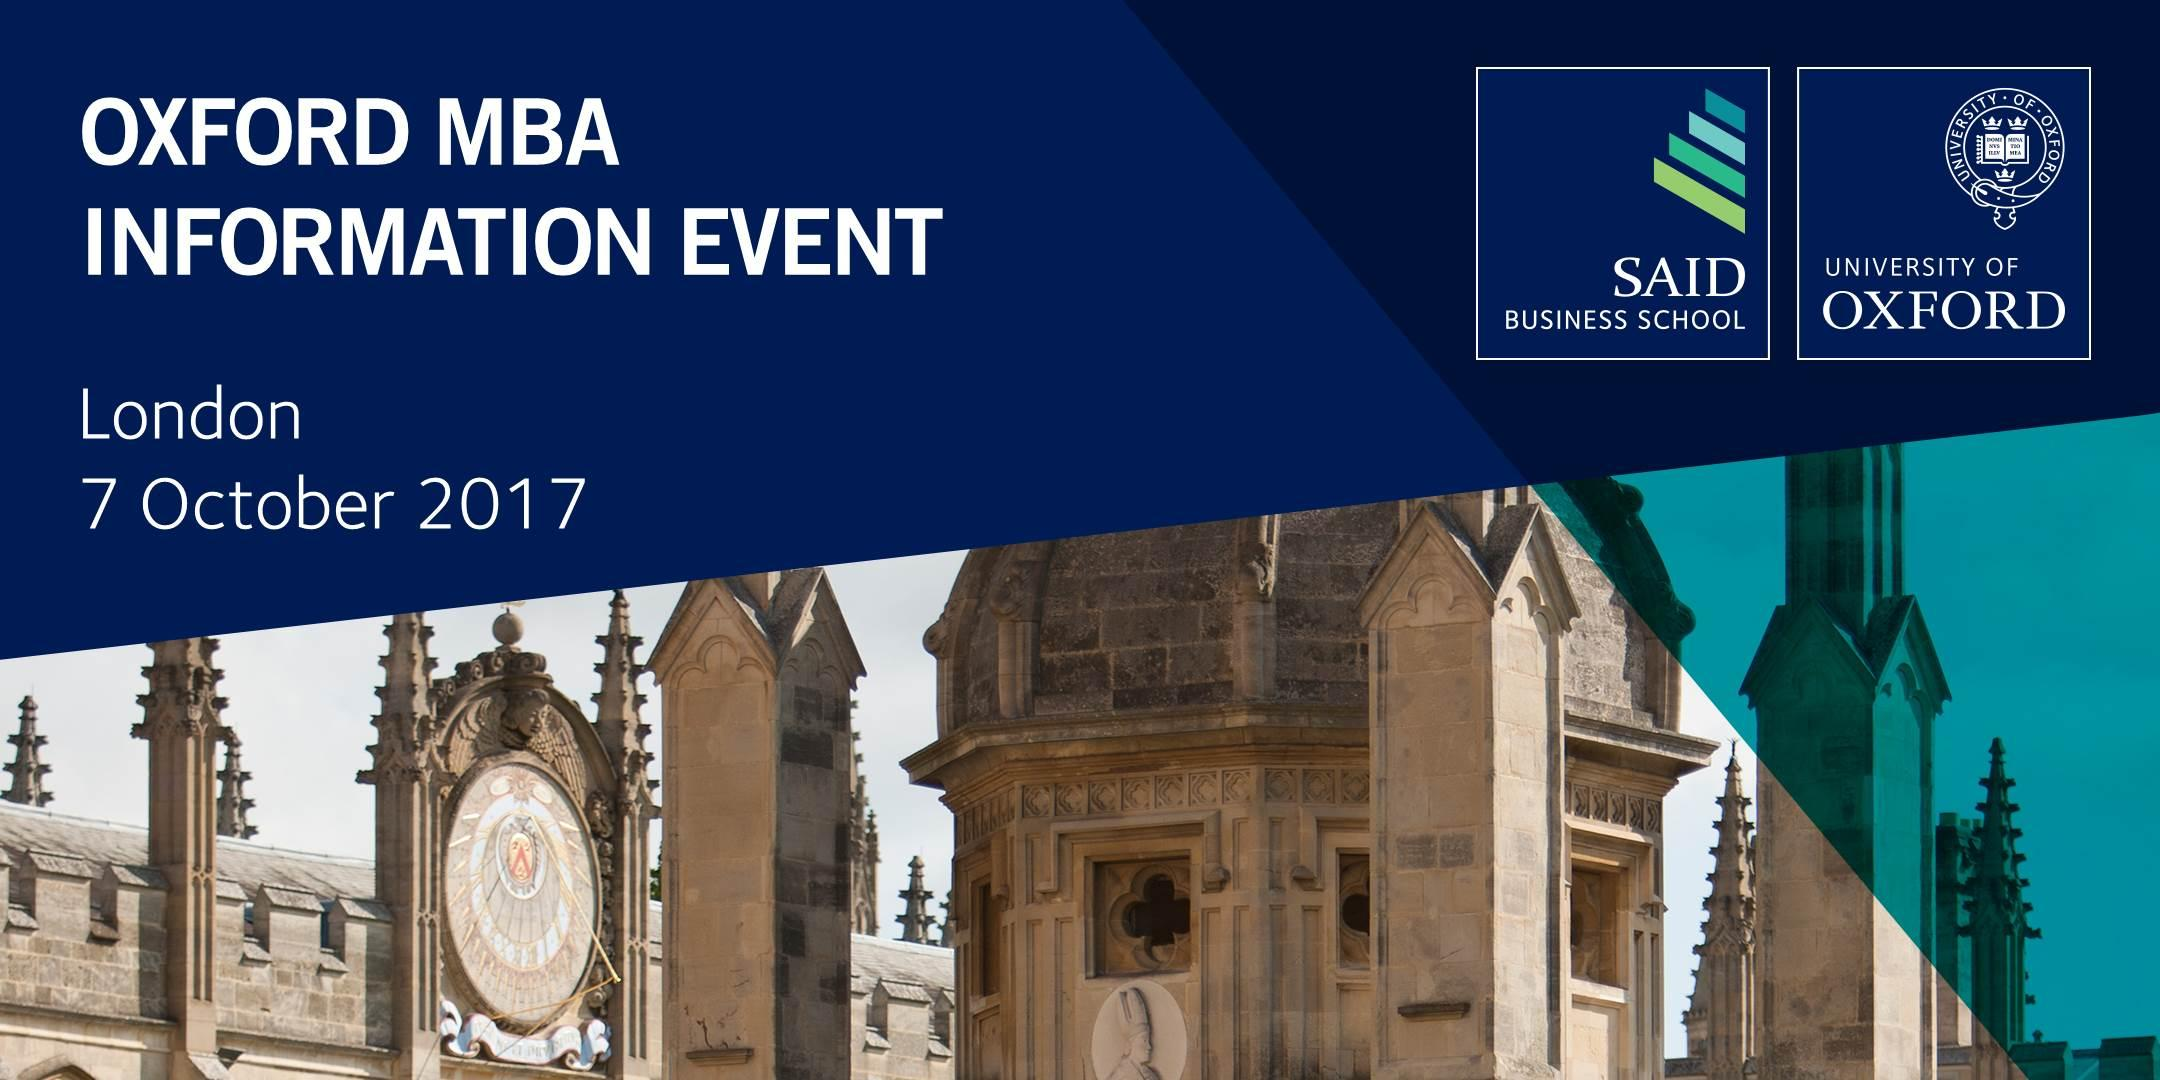 Oxford MBA Information Event in London